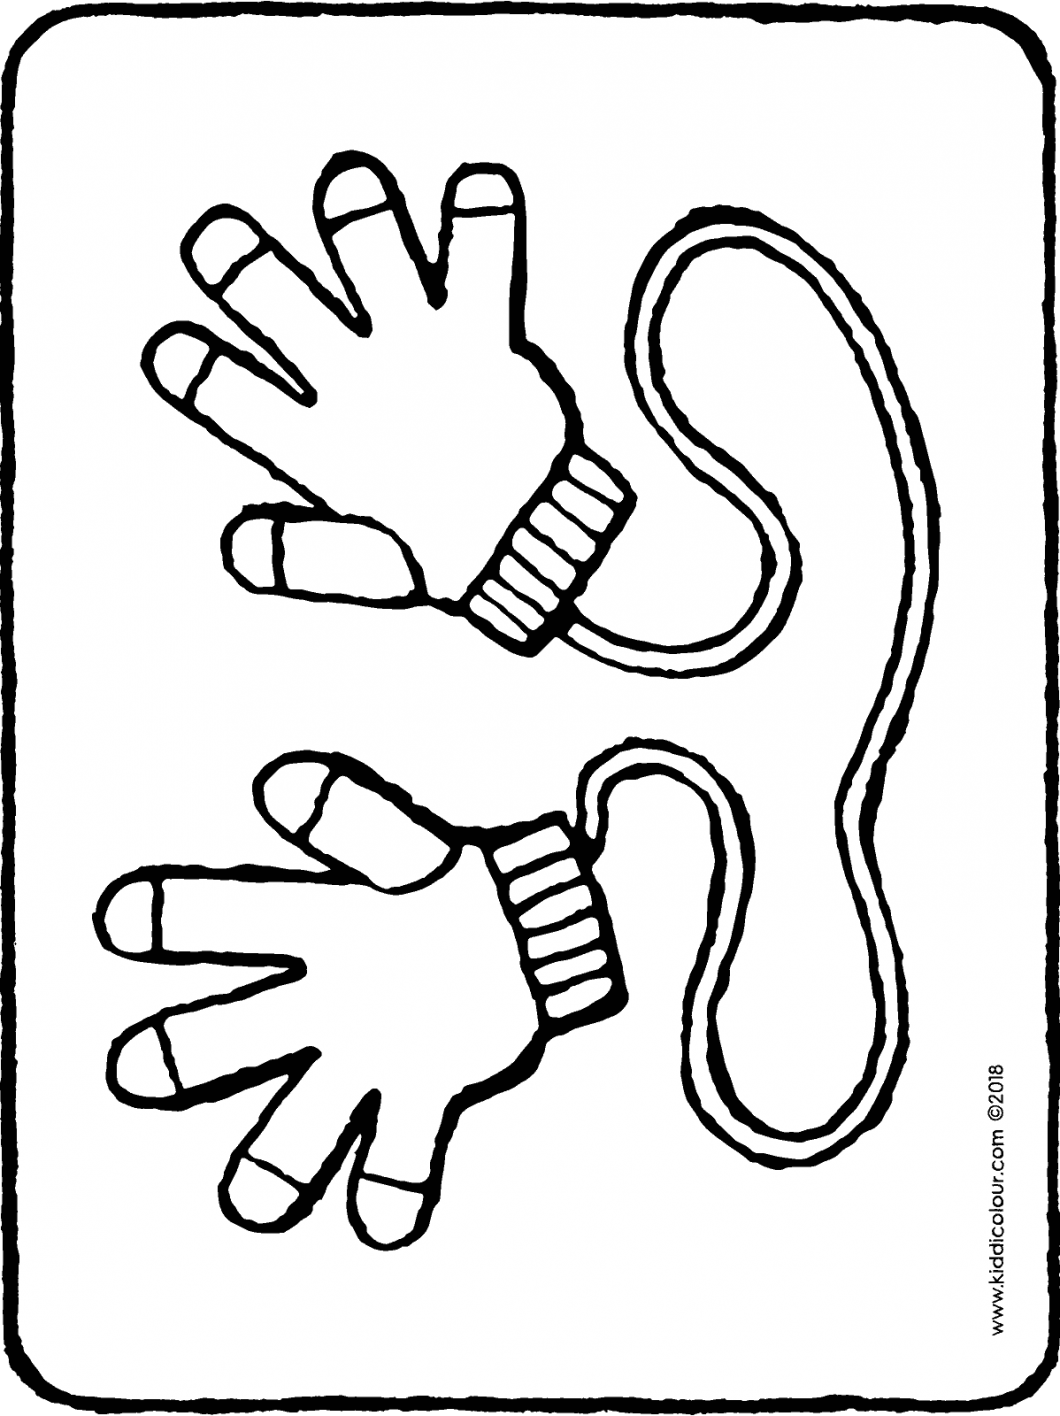 gloves colouring page drawing picture 01H